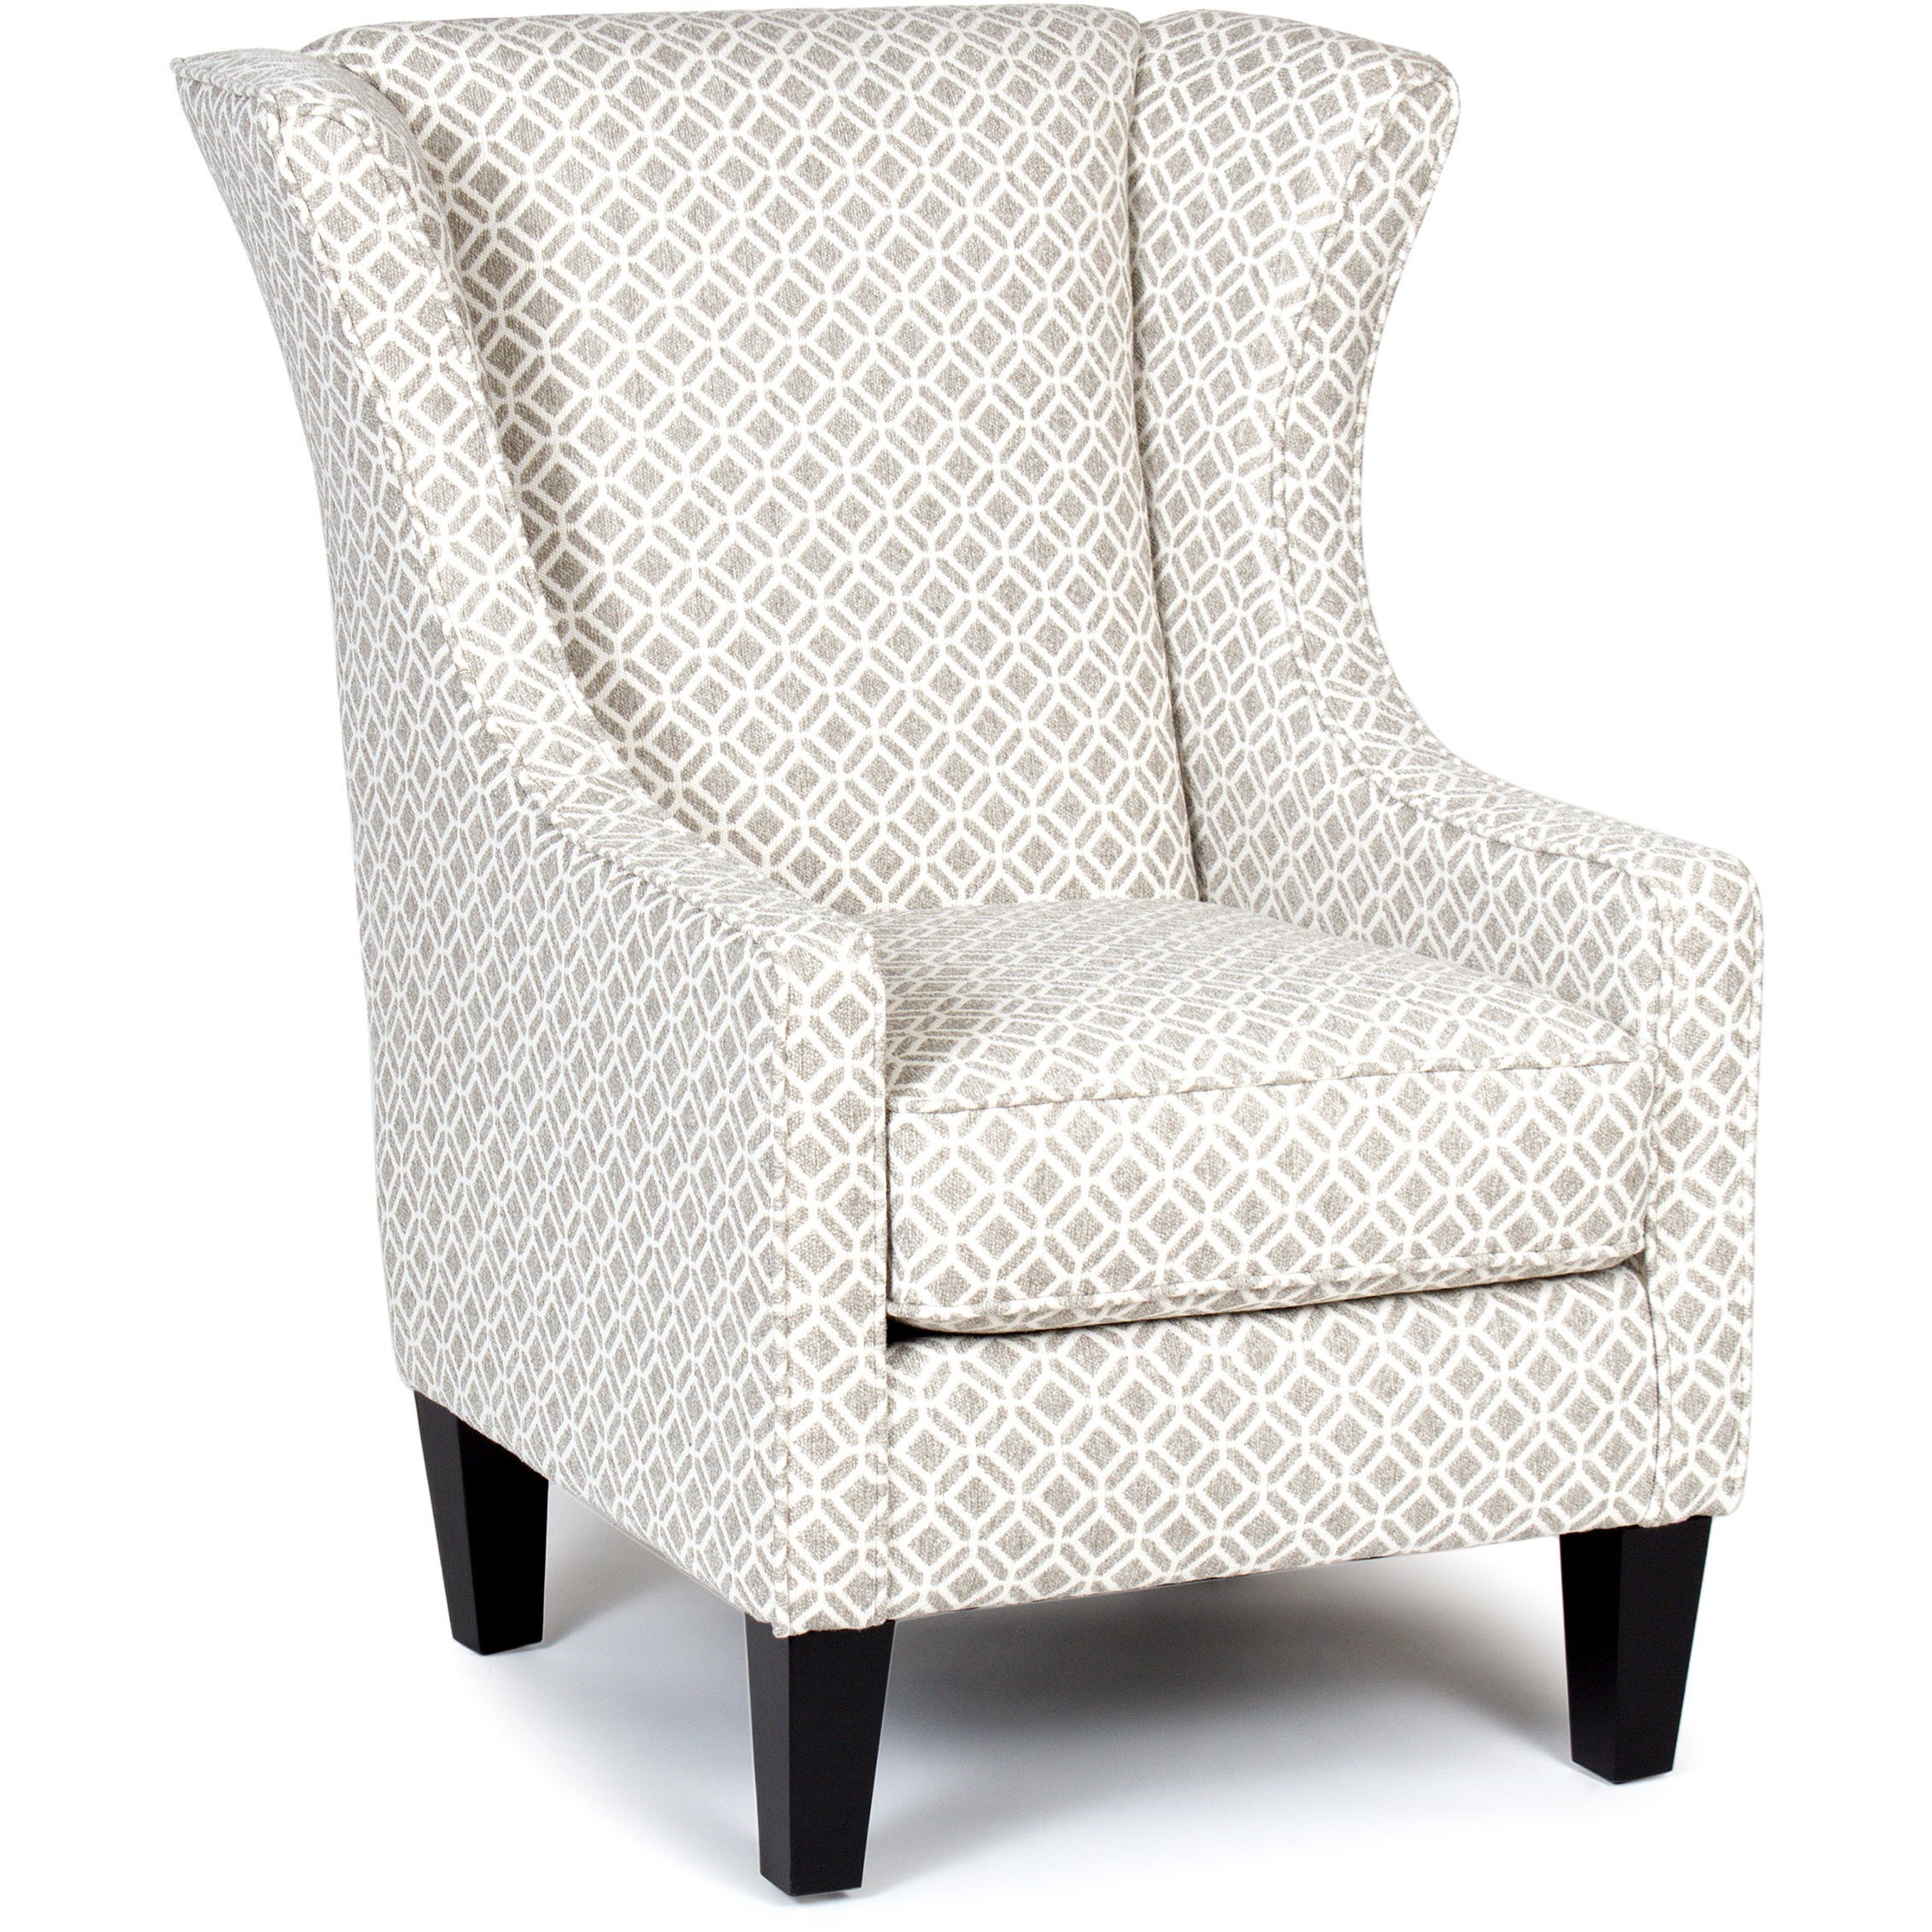 Delicieux Chairs America Accent Chairs And Ottomans Wing Chair With Tapered Legs